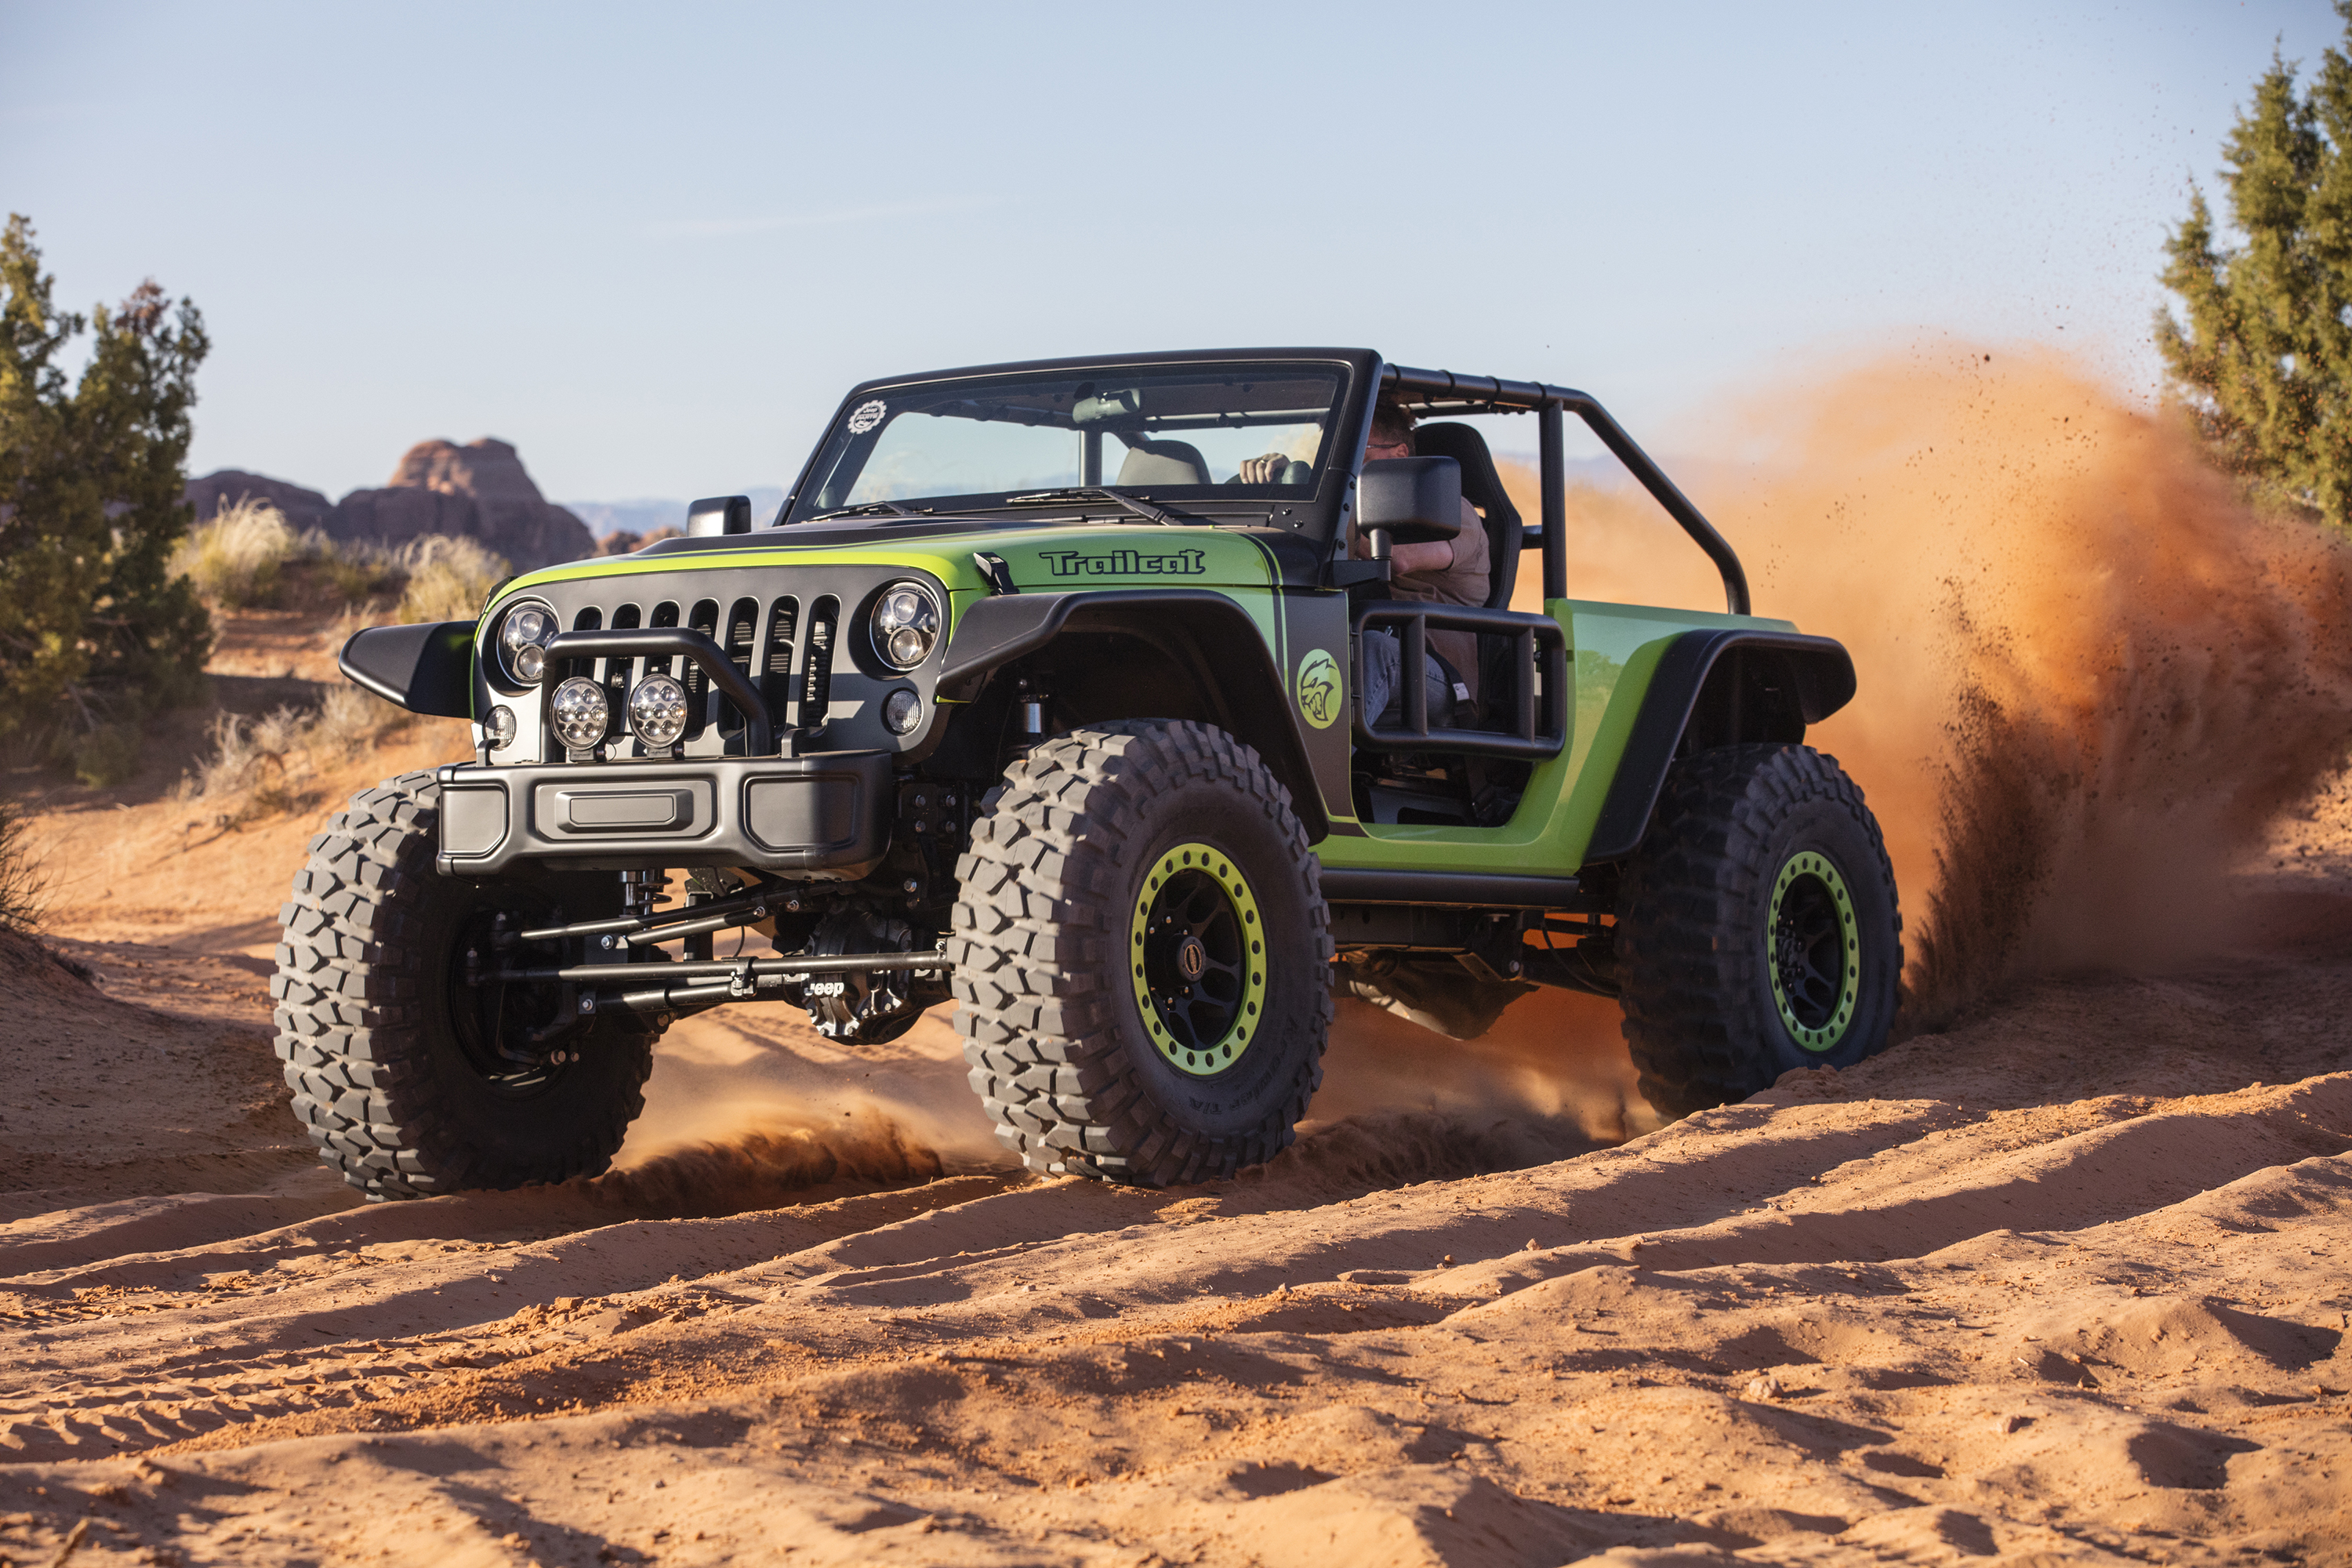 Jeep Trailcat Concept with Hellcat engine Photo: wheelsage